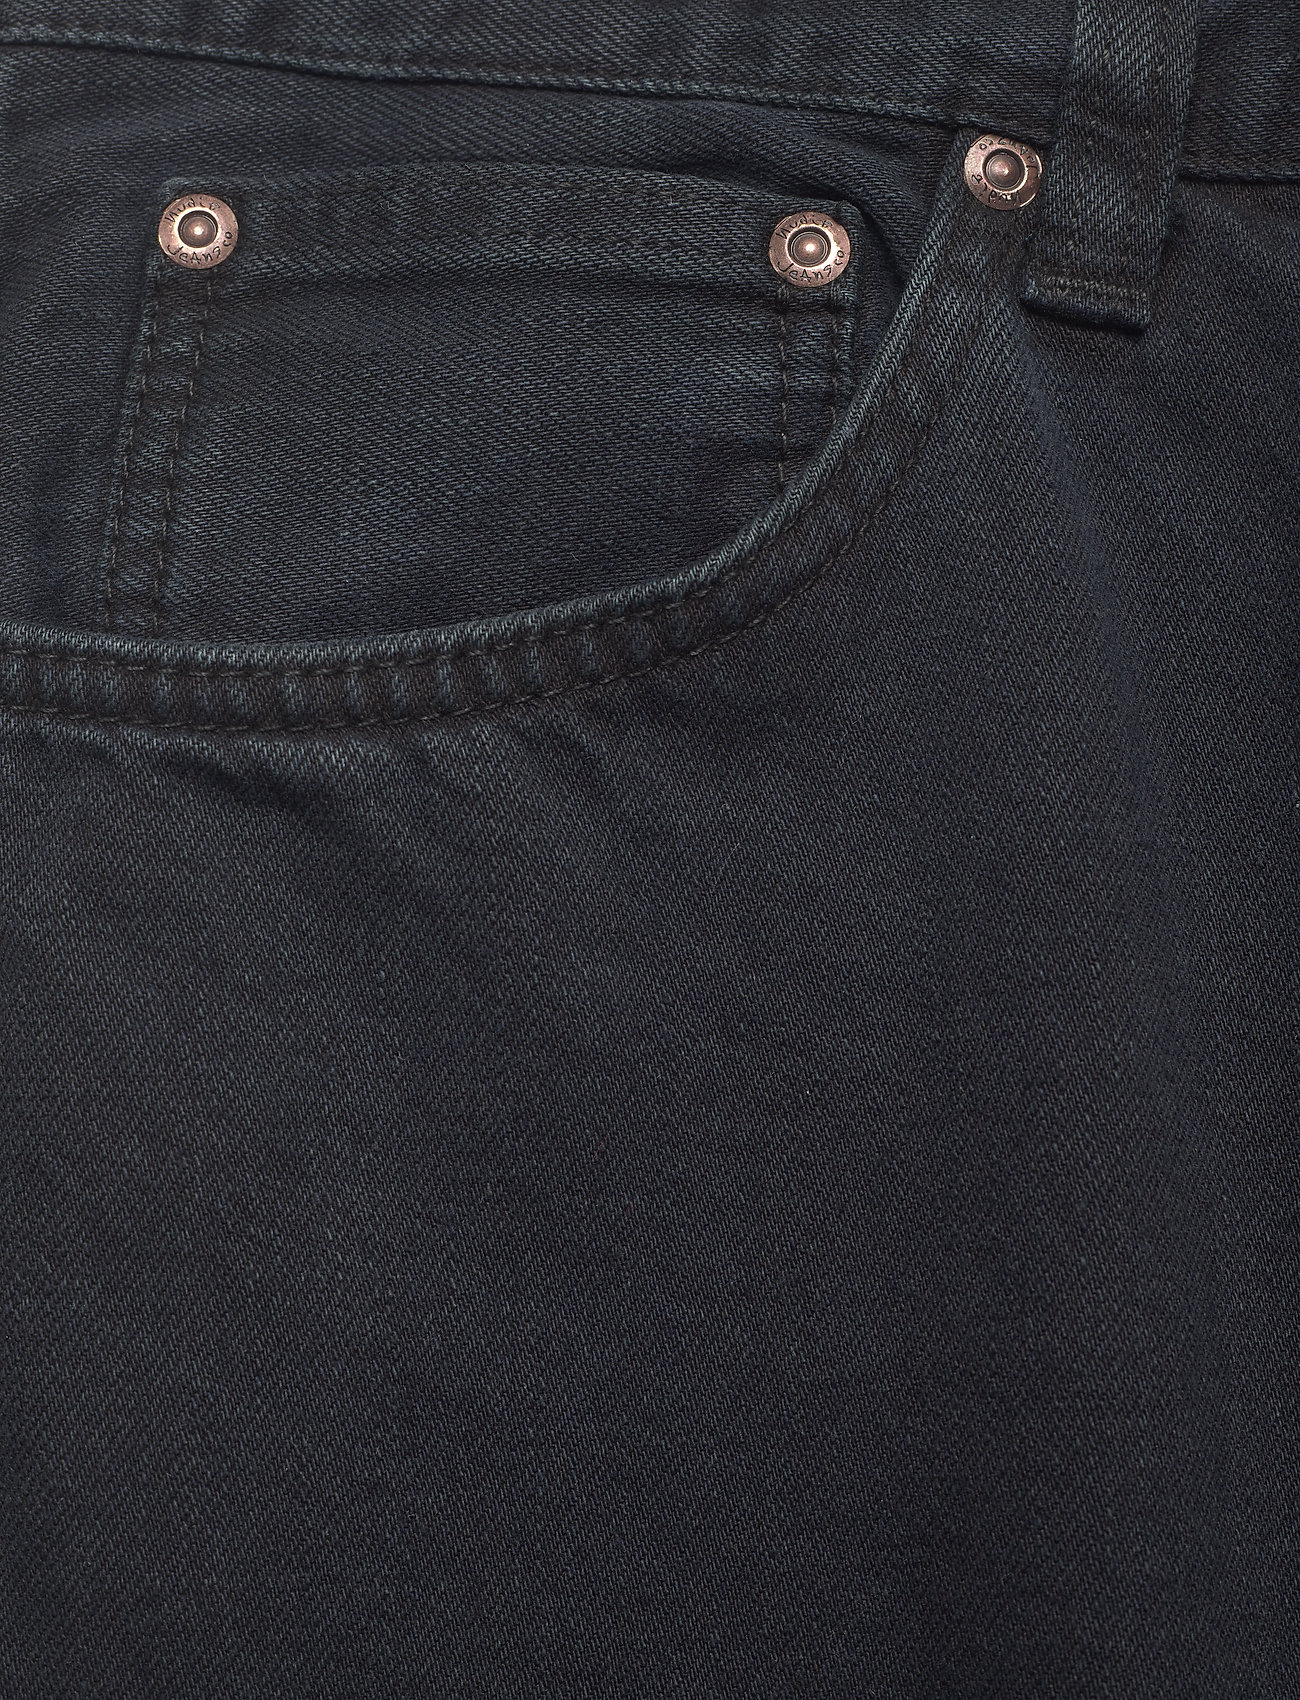 Nudie Jeans - Gritty Jackson - regular jeans - black forest - 2